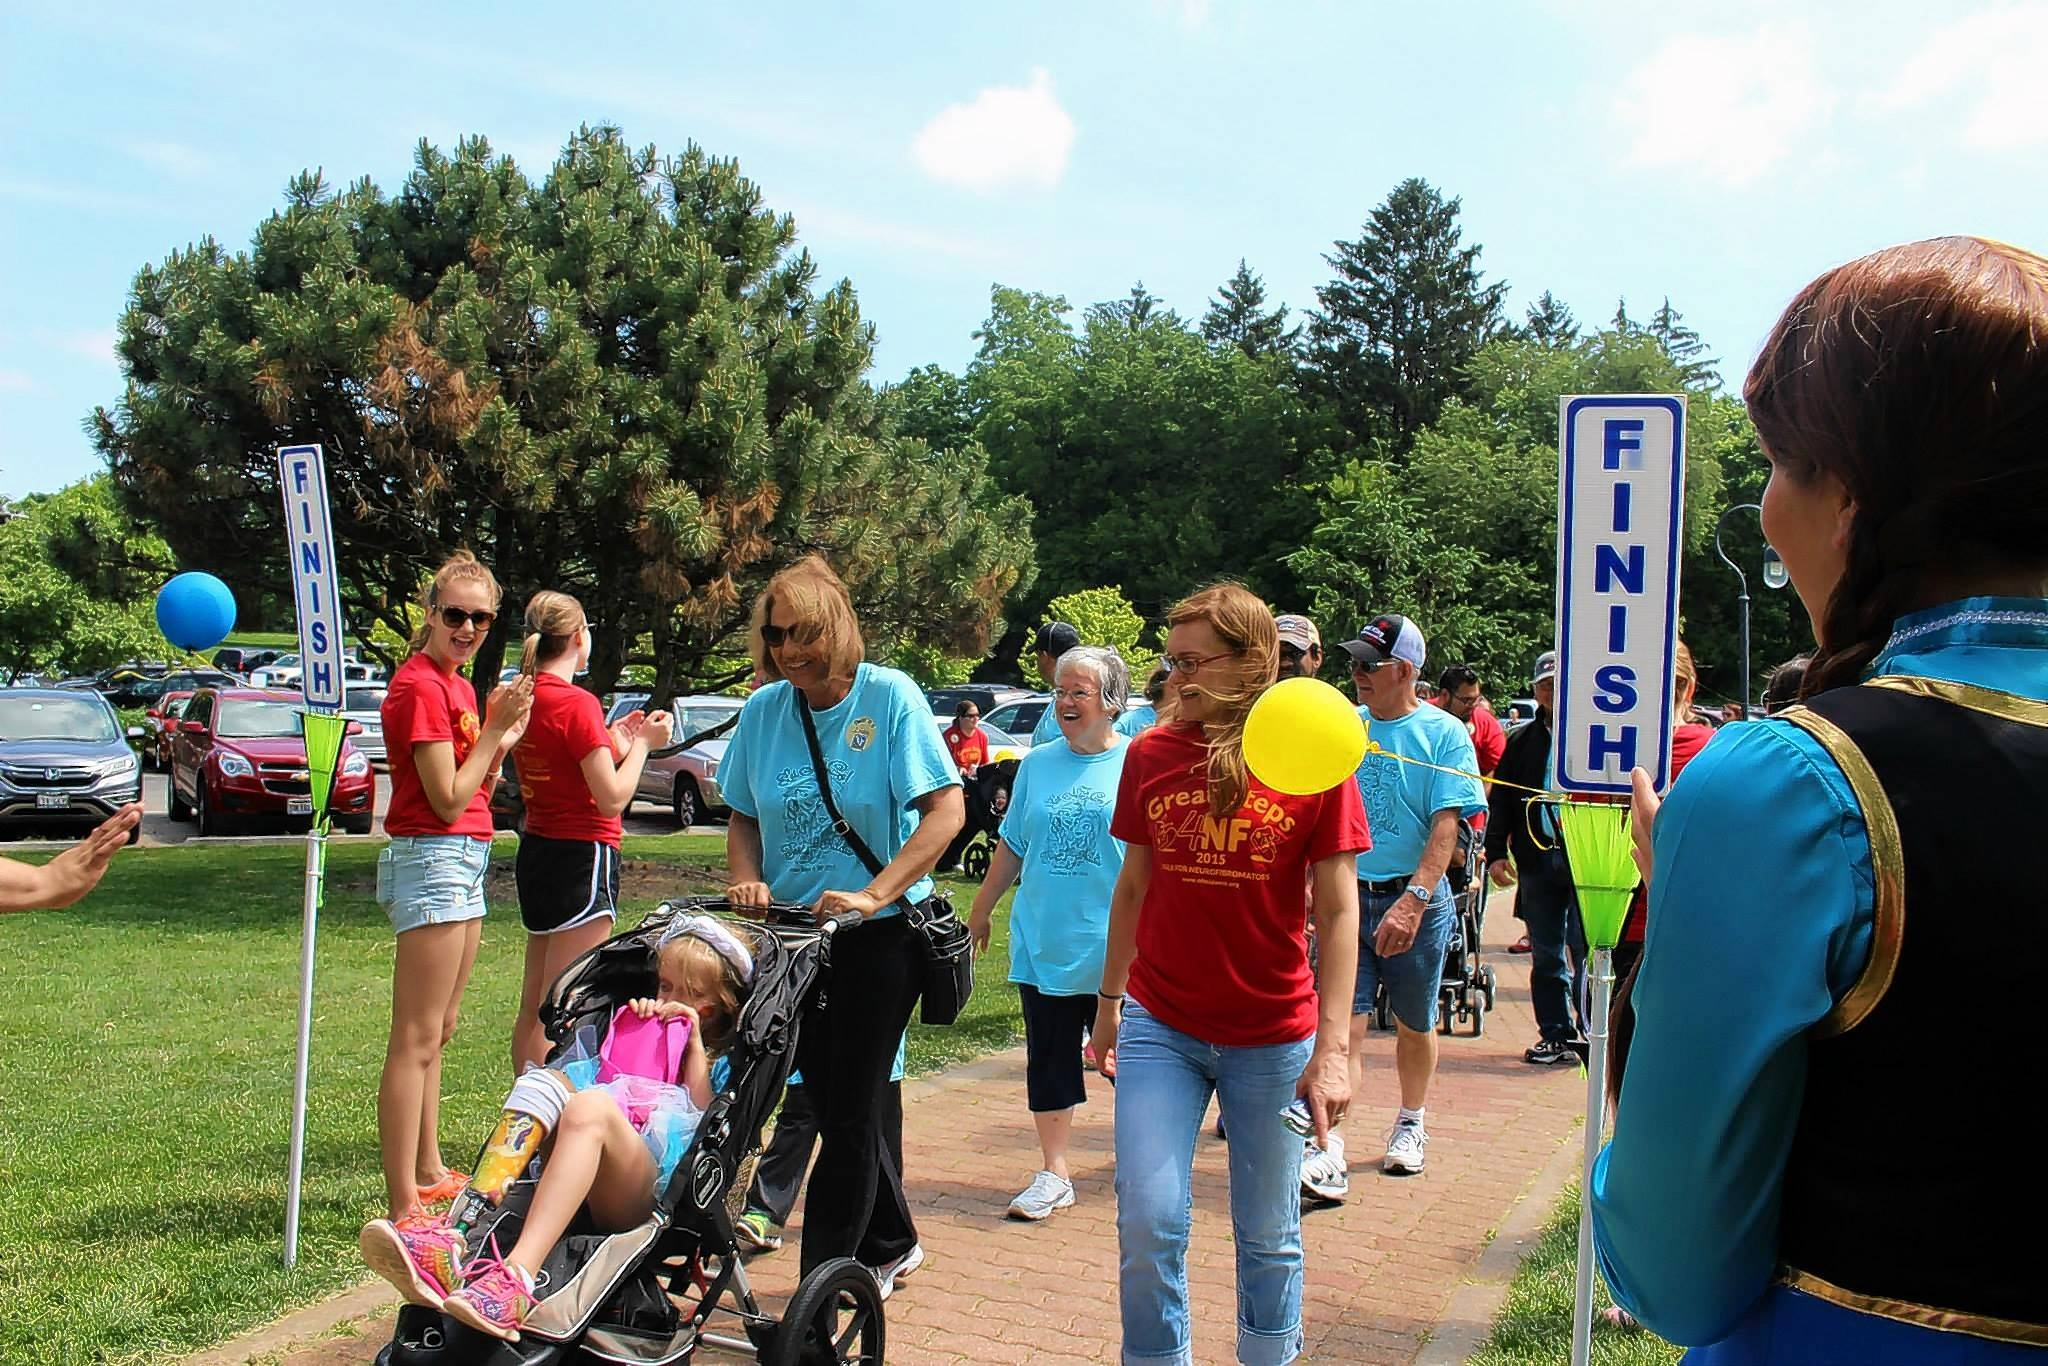 The Great Steps 4NF Walk raises money to support NF Midwest's efforts to improve care for those with neurofibromatosis as well as to fund research.